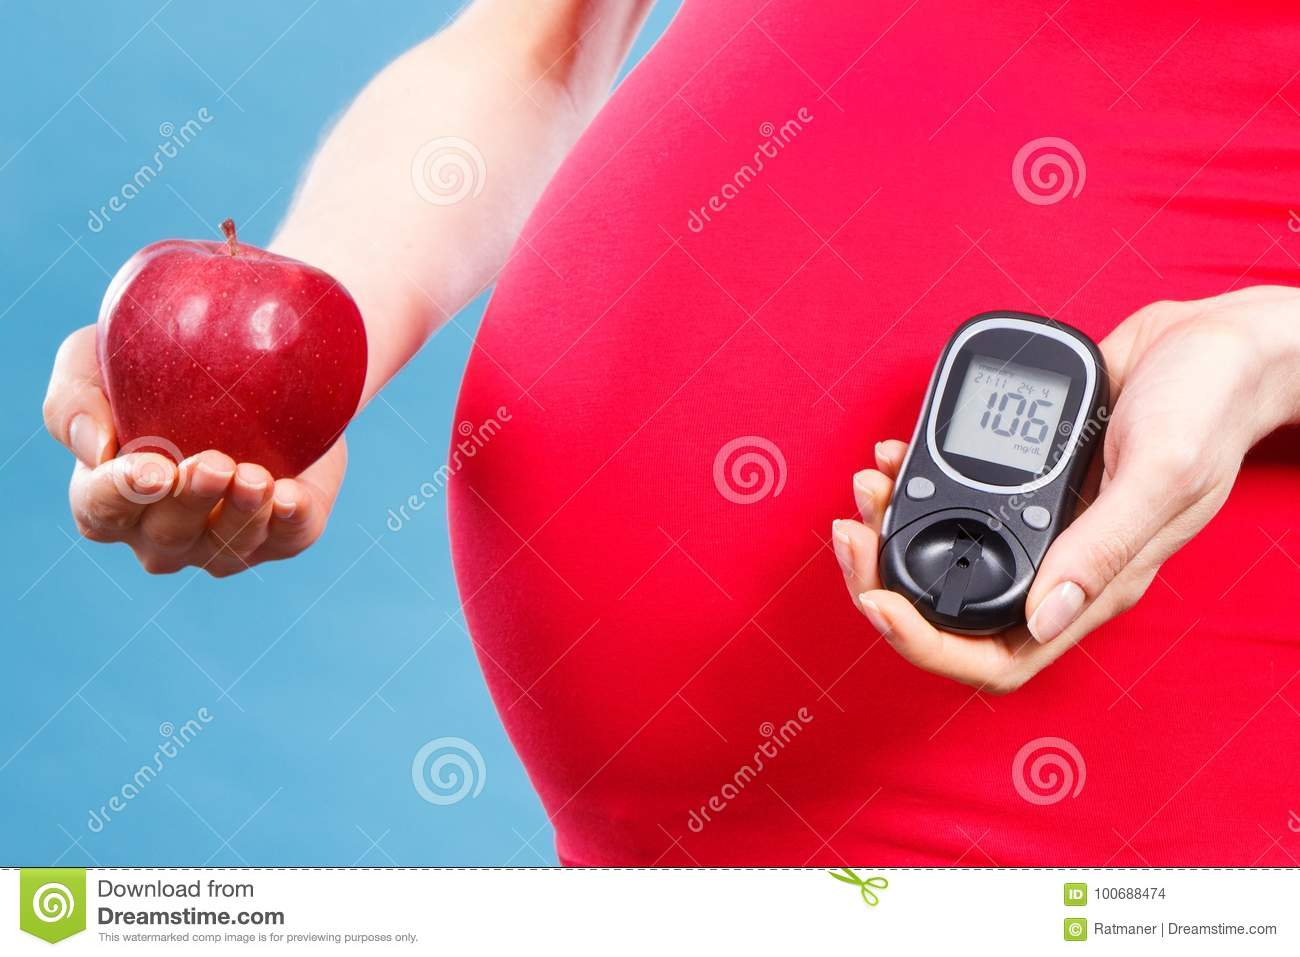 Red Apple During Pregnancy